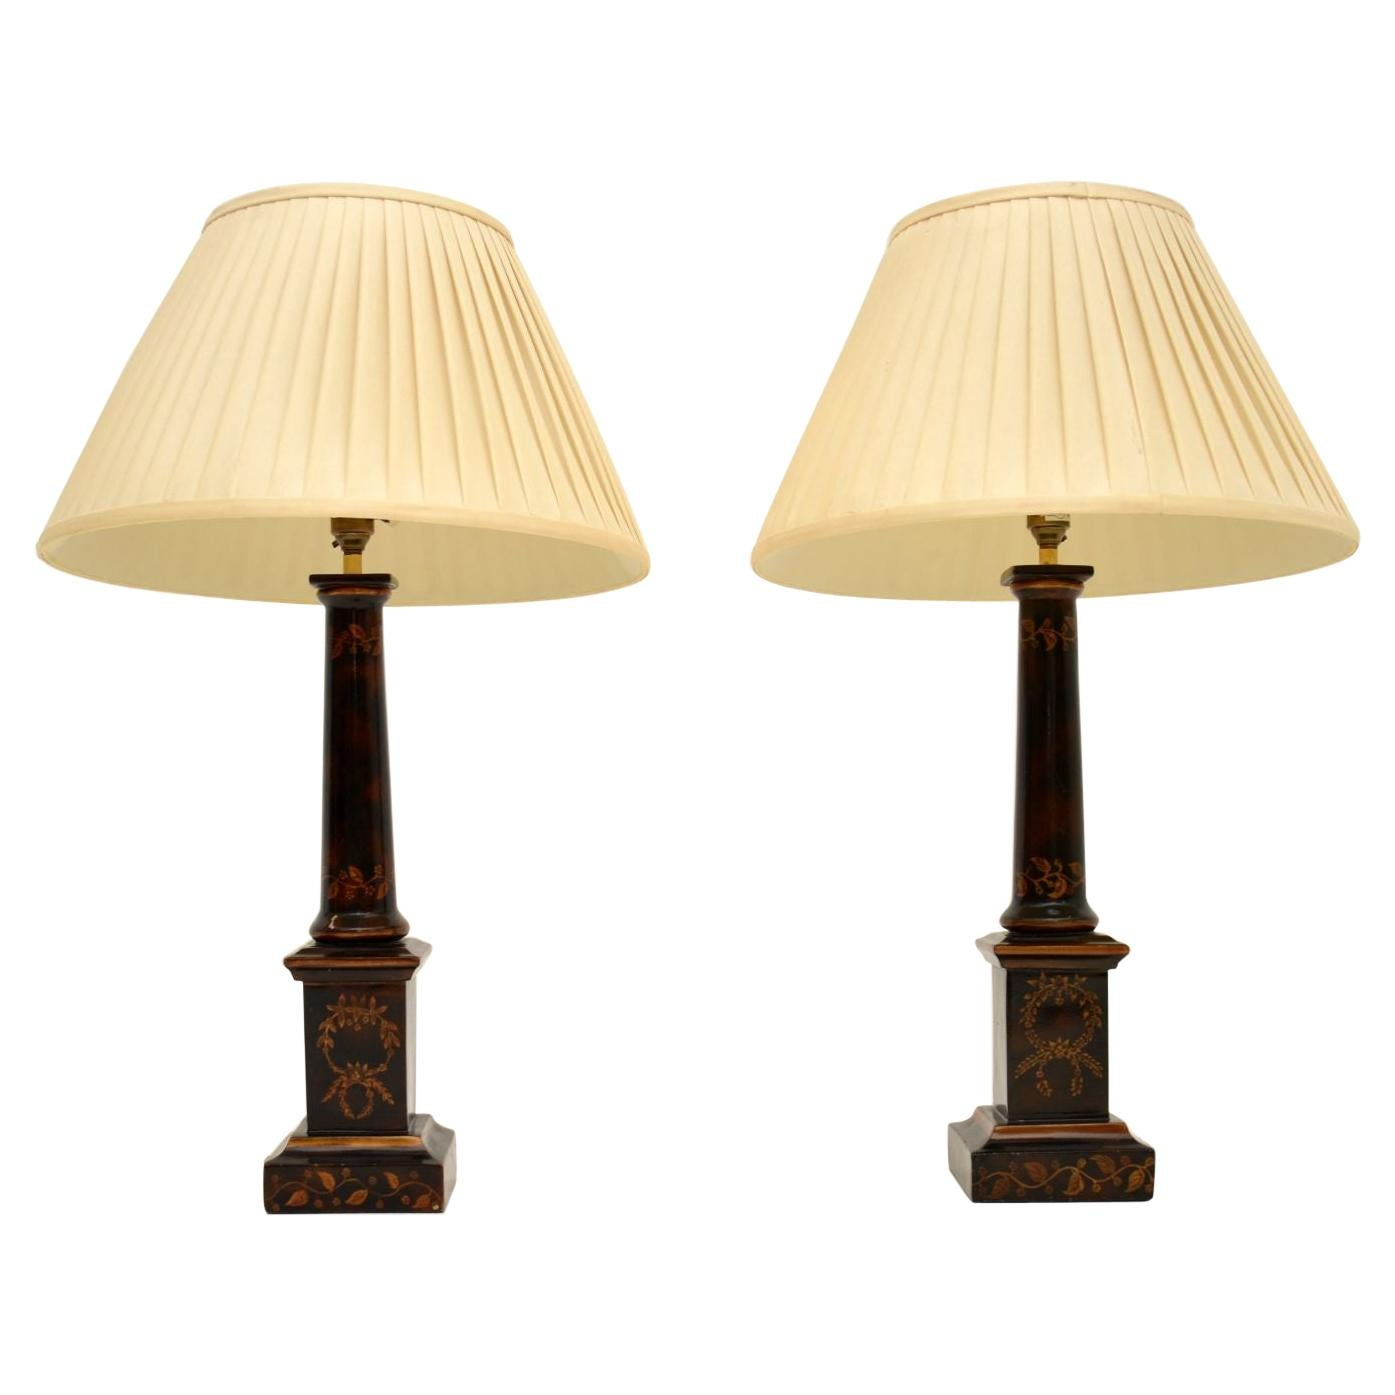 Pair of Antique Neoclassical Style Table Lamps